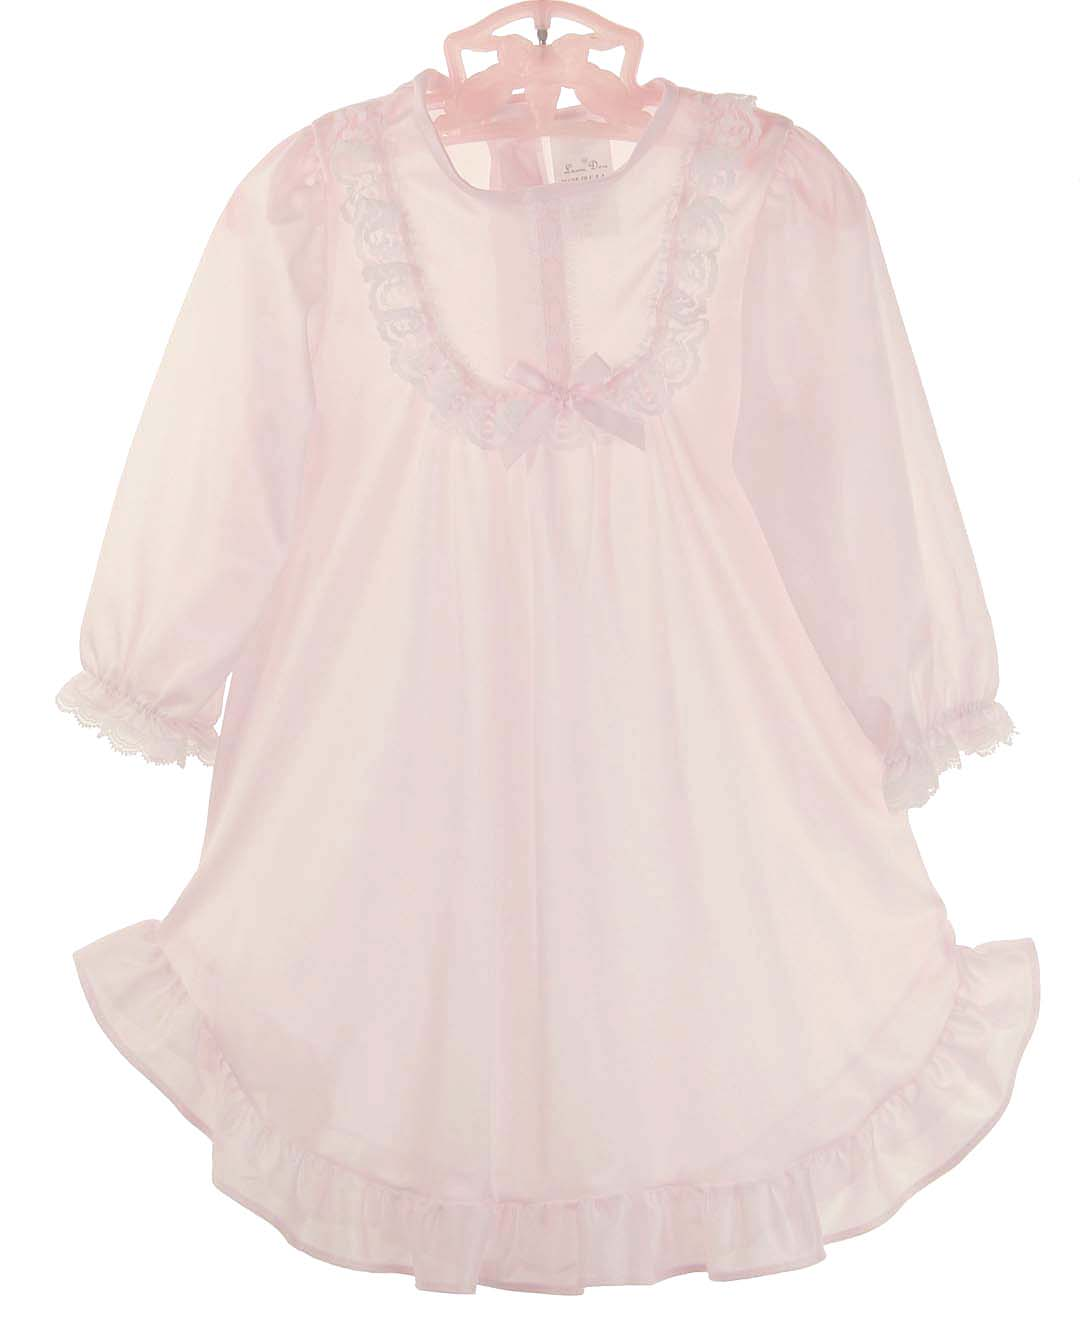 NEW Pale Pink Nylon Nightgown with Long Sleeves for Babies, Toddlers ...